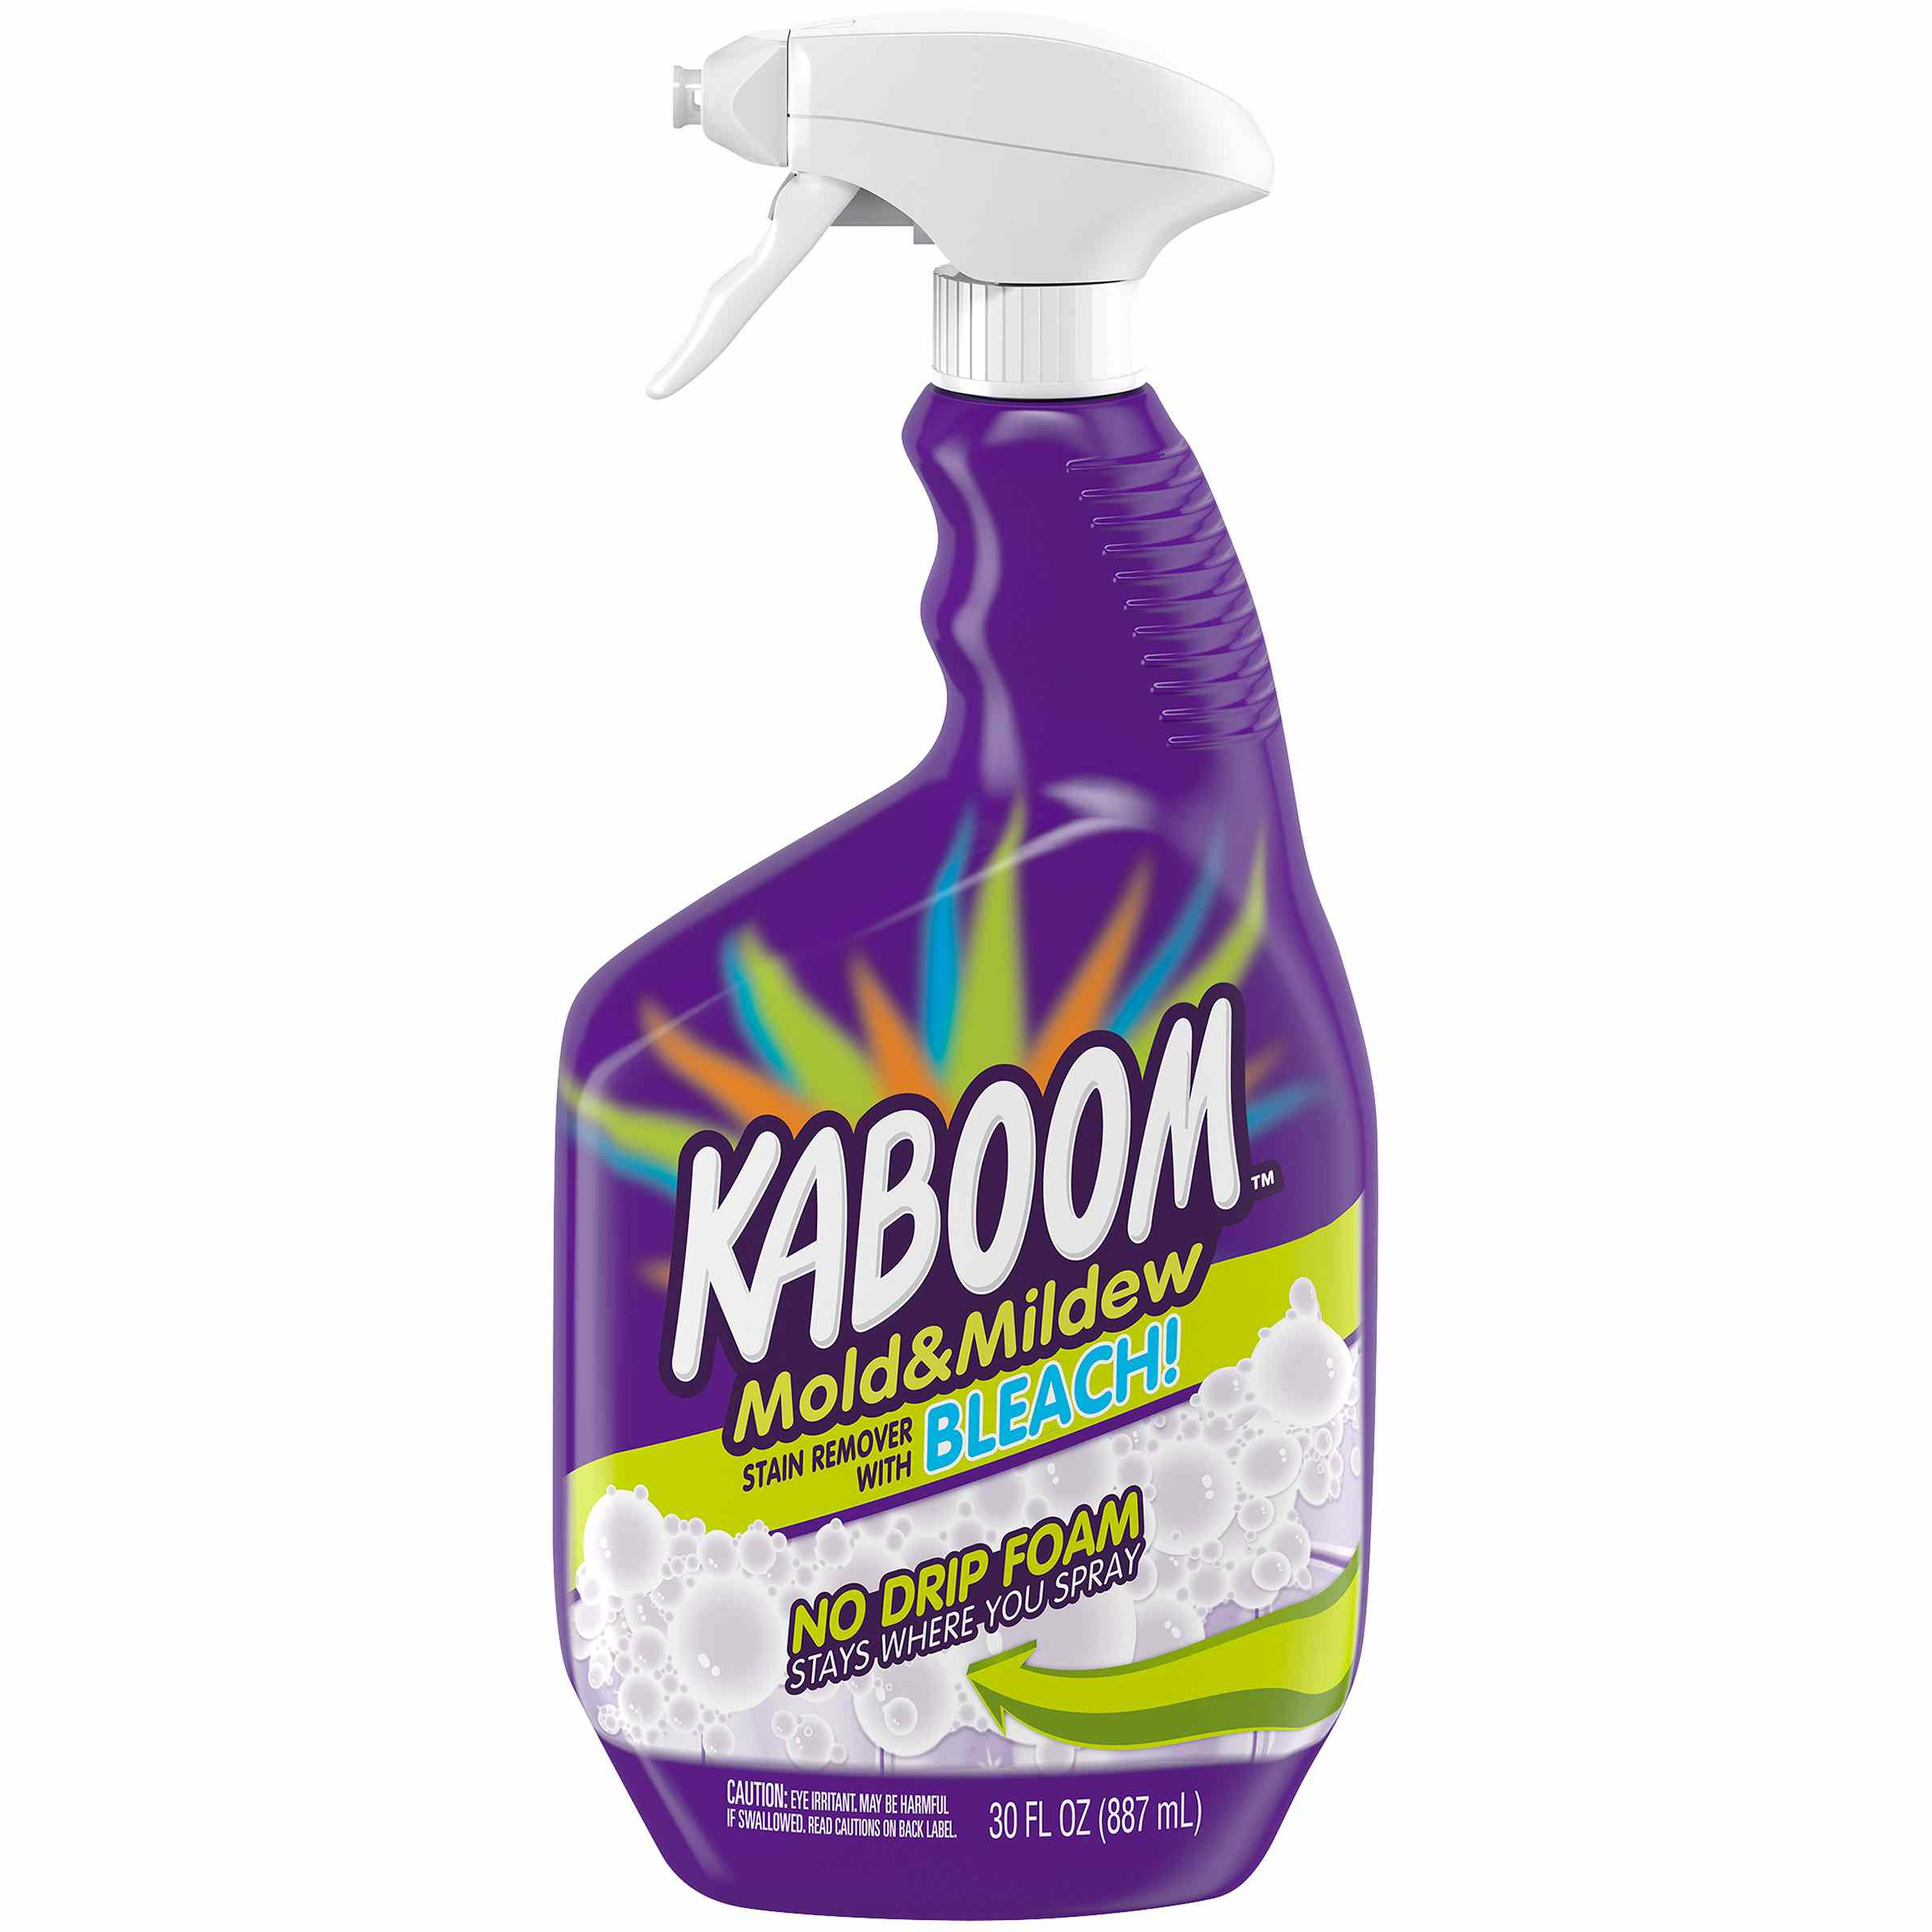 Kaboom Mold & Mildew Stain Remover with Bleach No Drip Foam